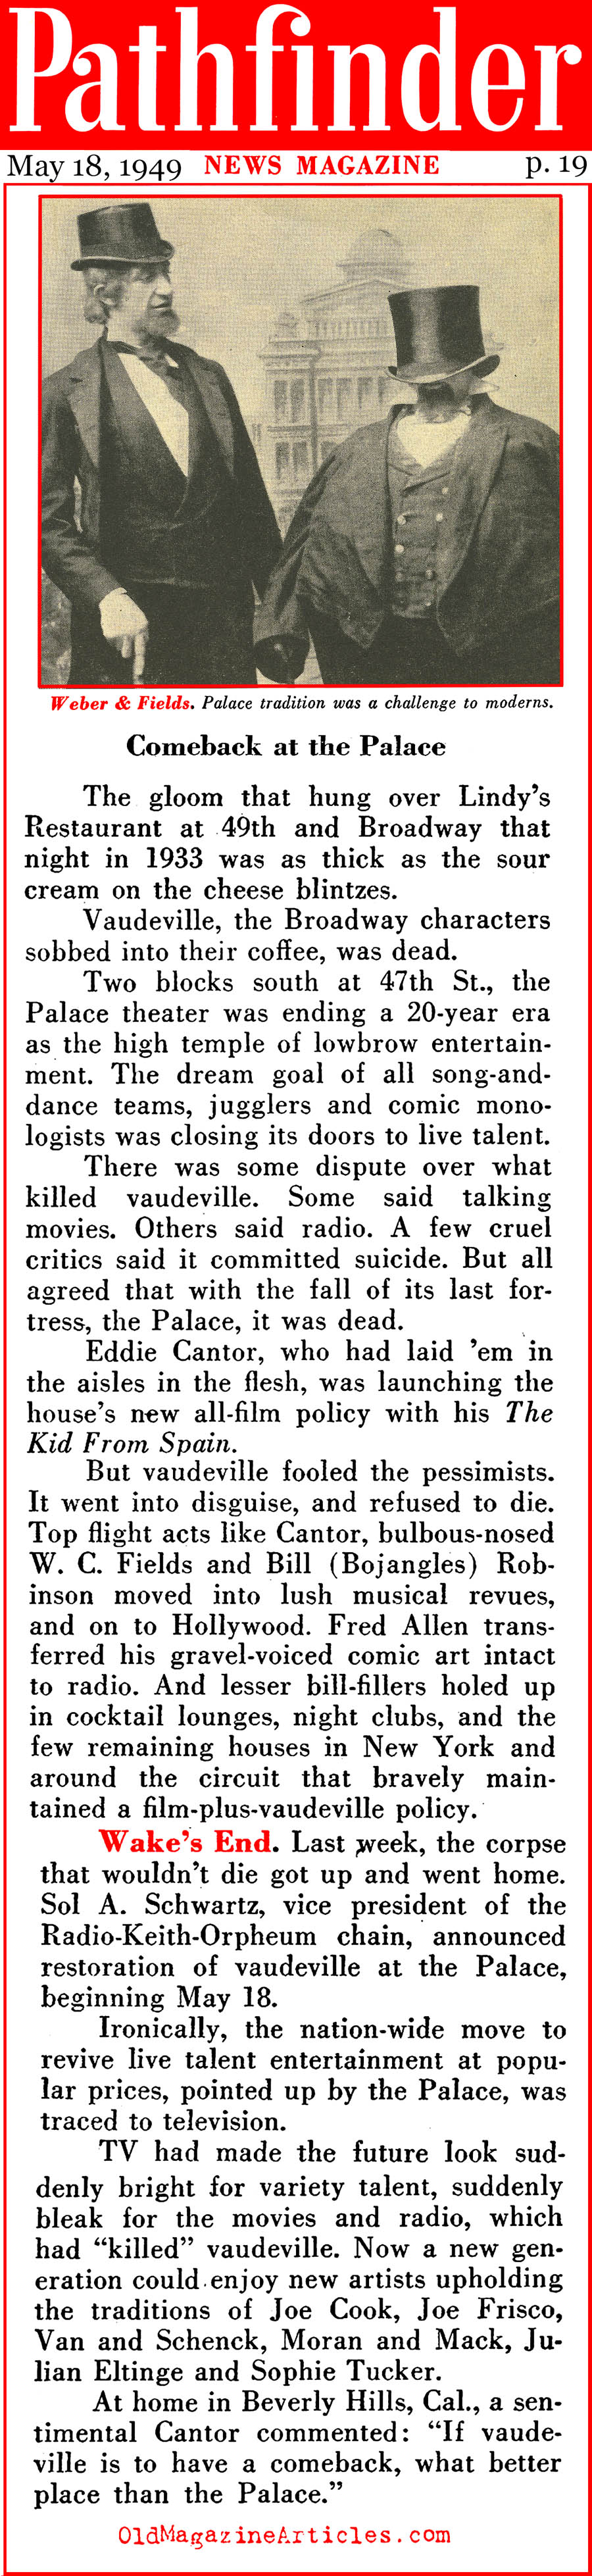 Vaudeville at the Palace Theater - Again (Pathfinder, 1949)